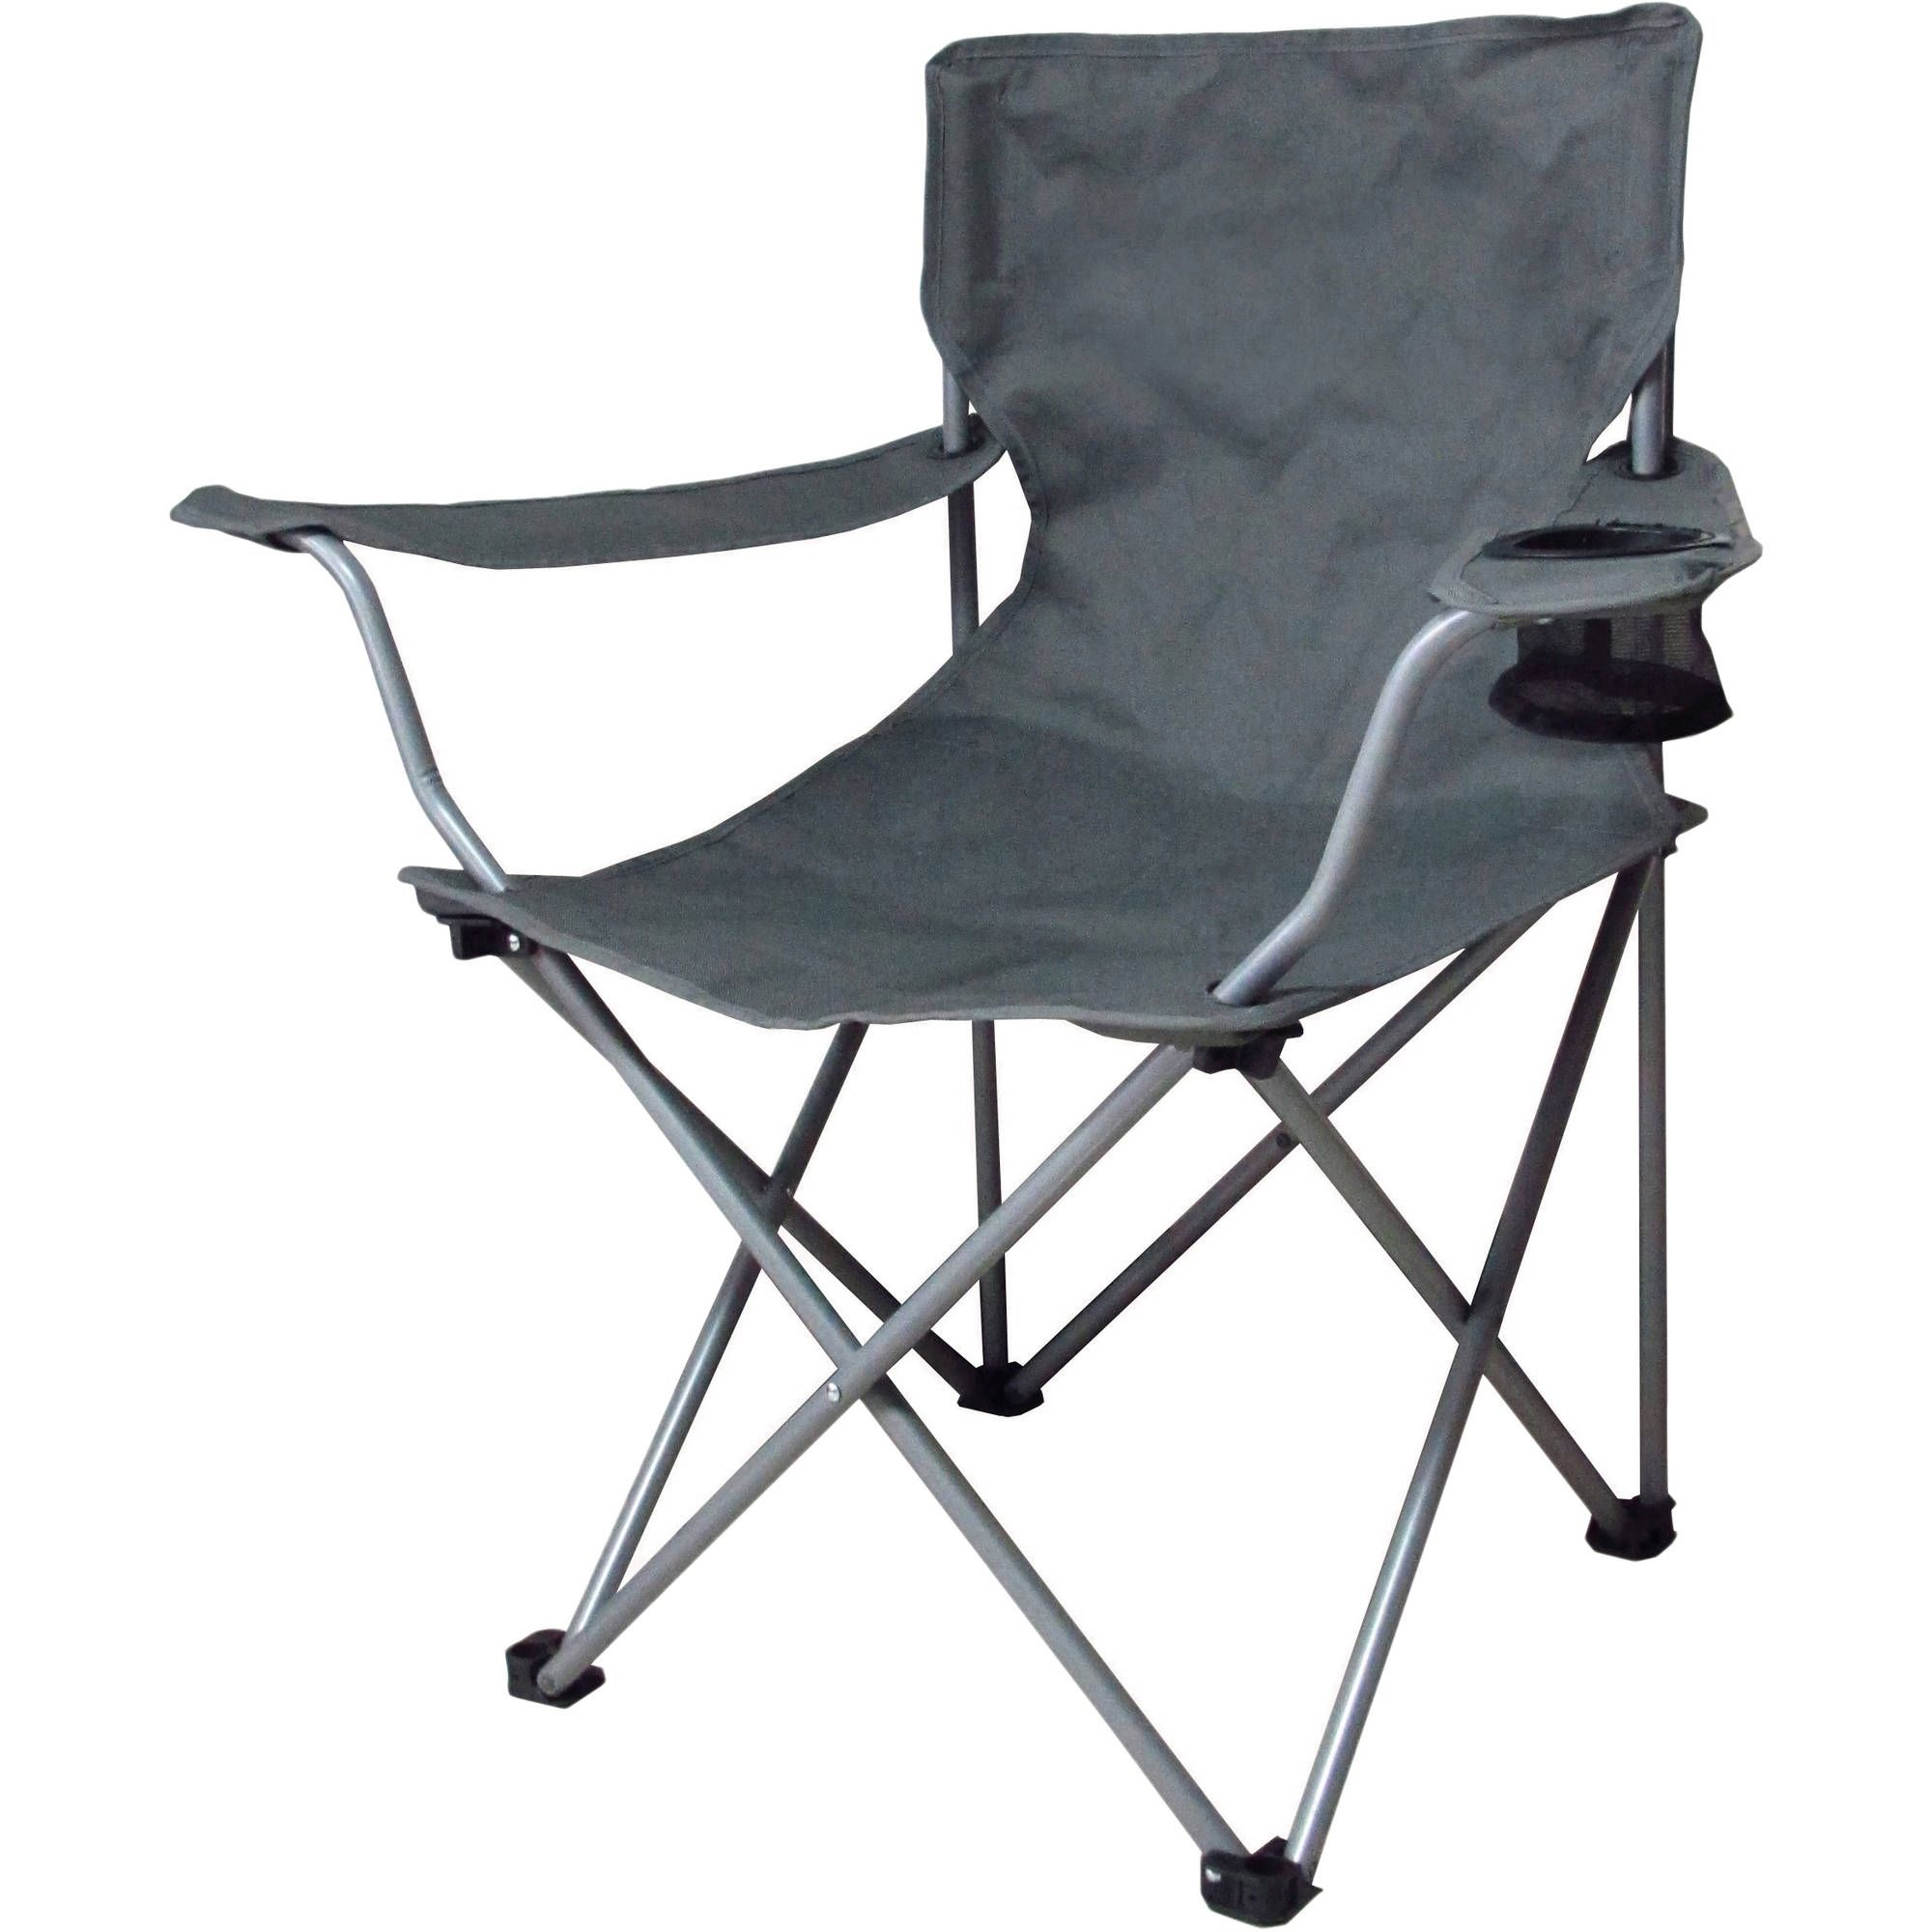 Small Fold Up Camping Chair Folding Chairs Pinterest